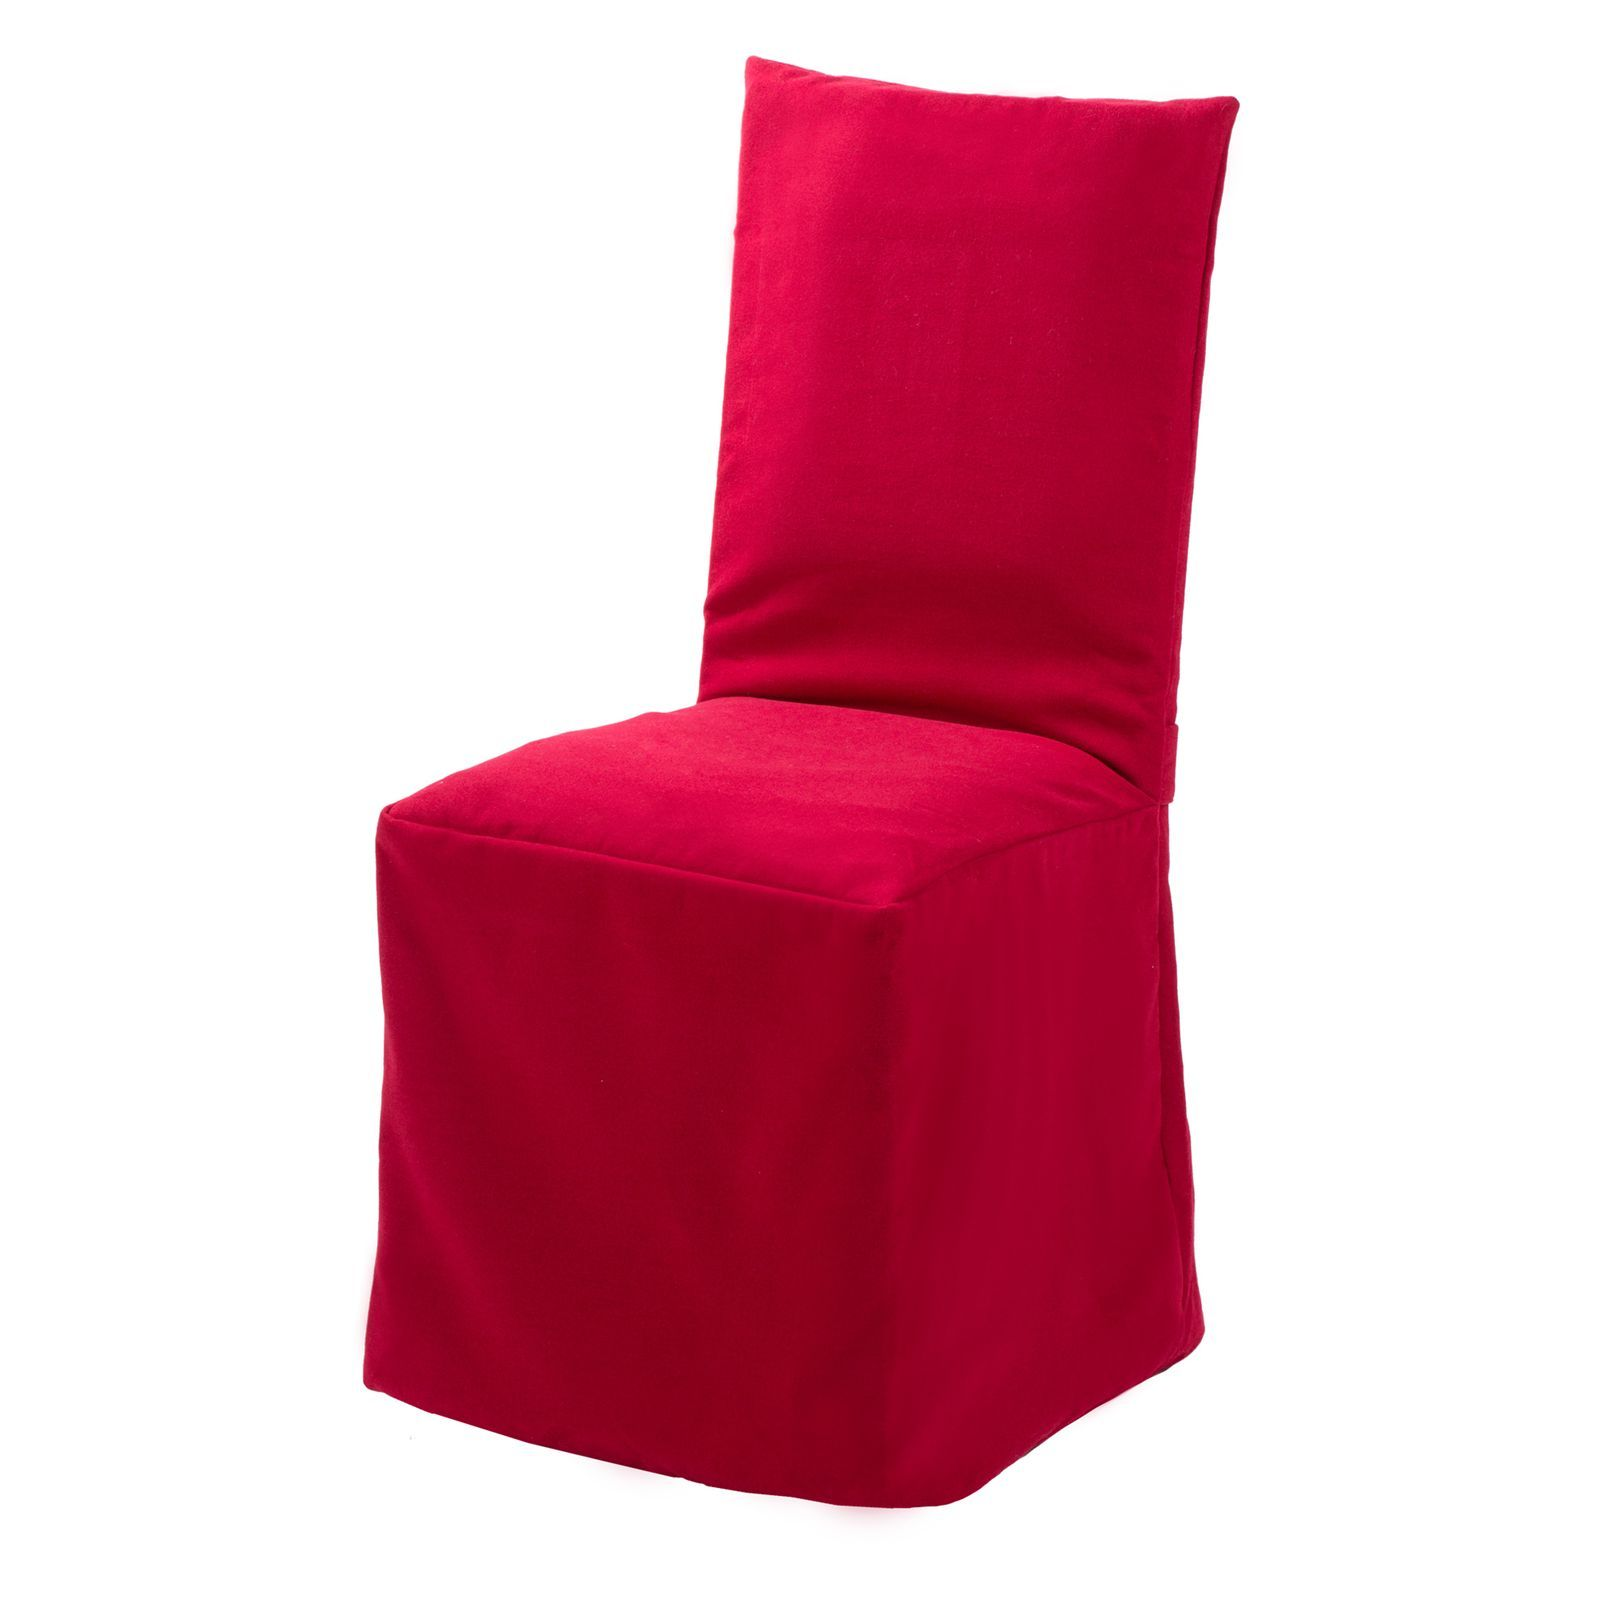 Madura alpina housse de chaise rouge brandalley - Housse de chaise rouge ...